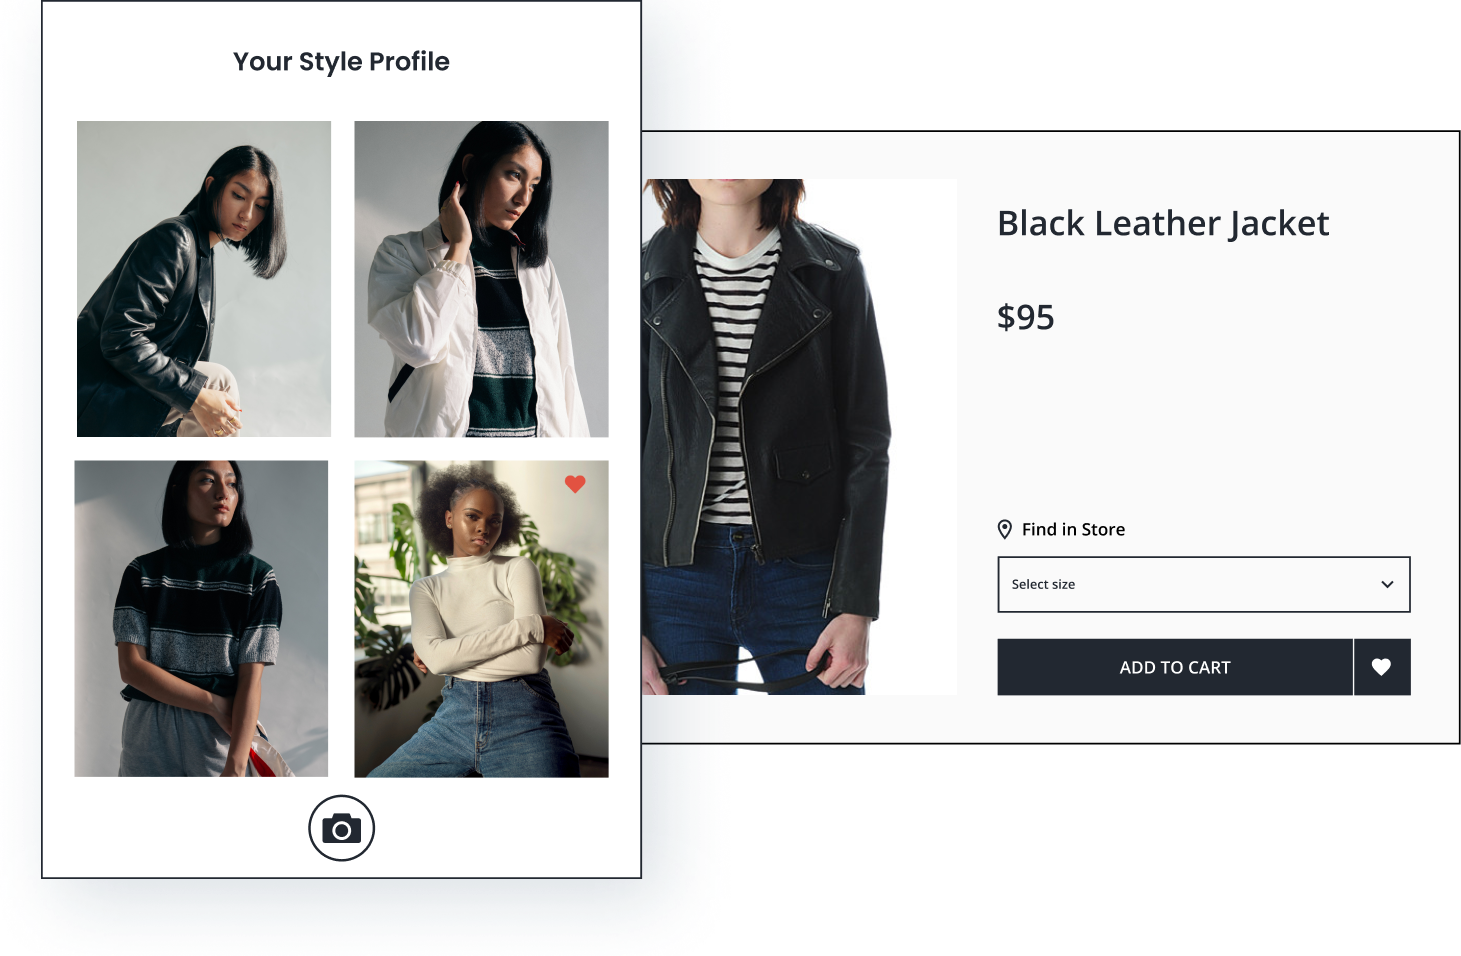 Based on 3 uploaded images and one favorited image in a style profile, a black leather jacket is recommended.